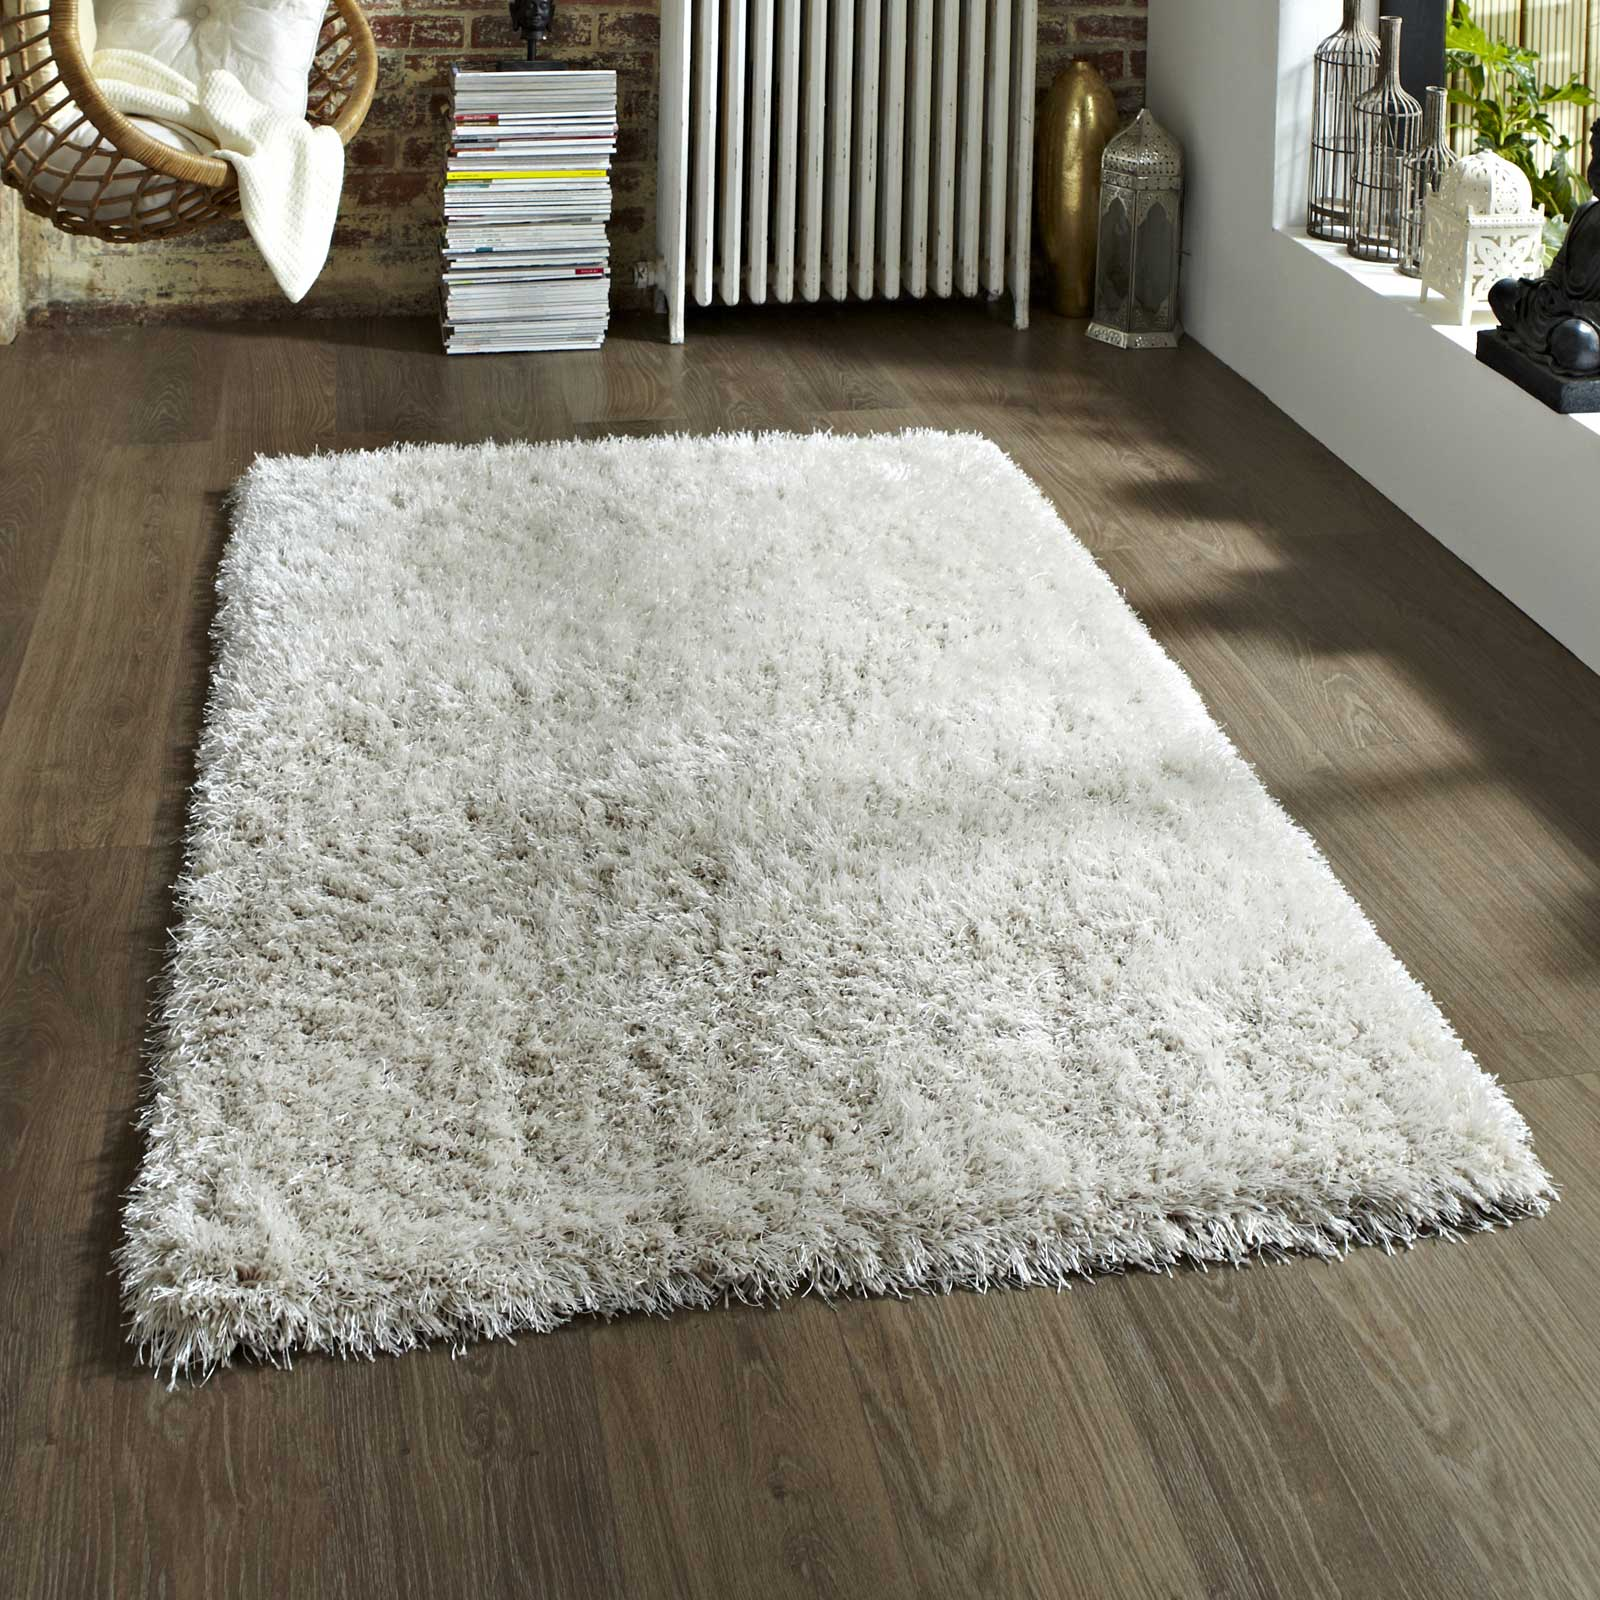 Monte Carlo Hand Made Shaggy Rugs In Grey Buy Online From The Rug